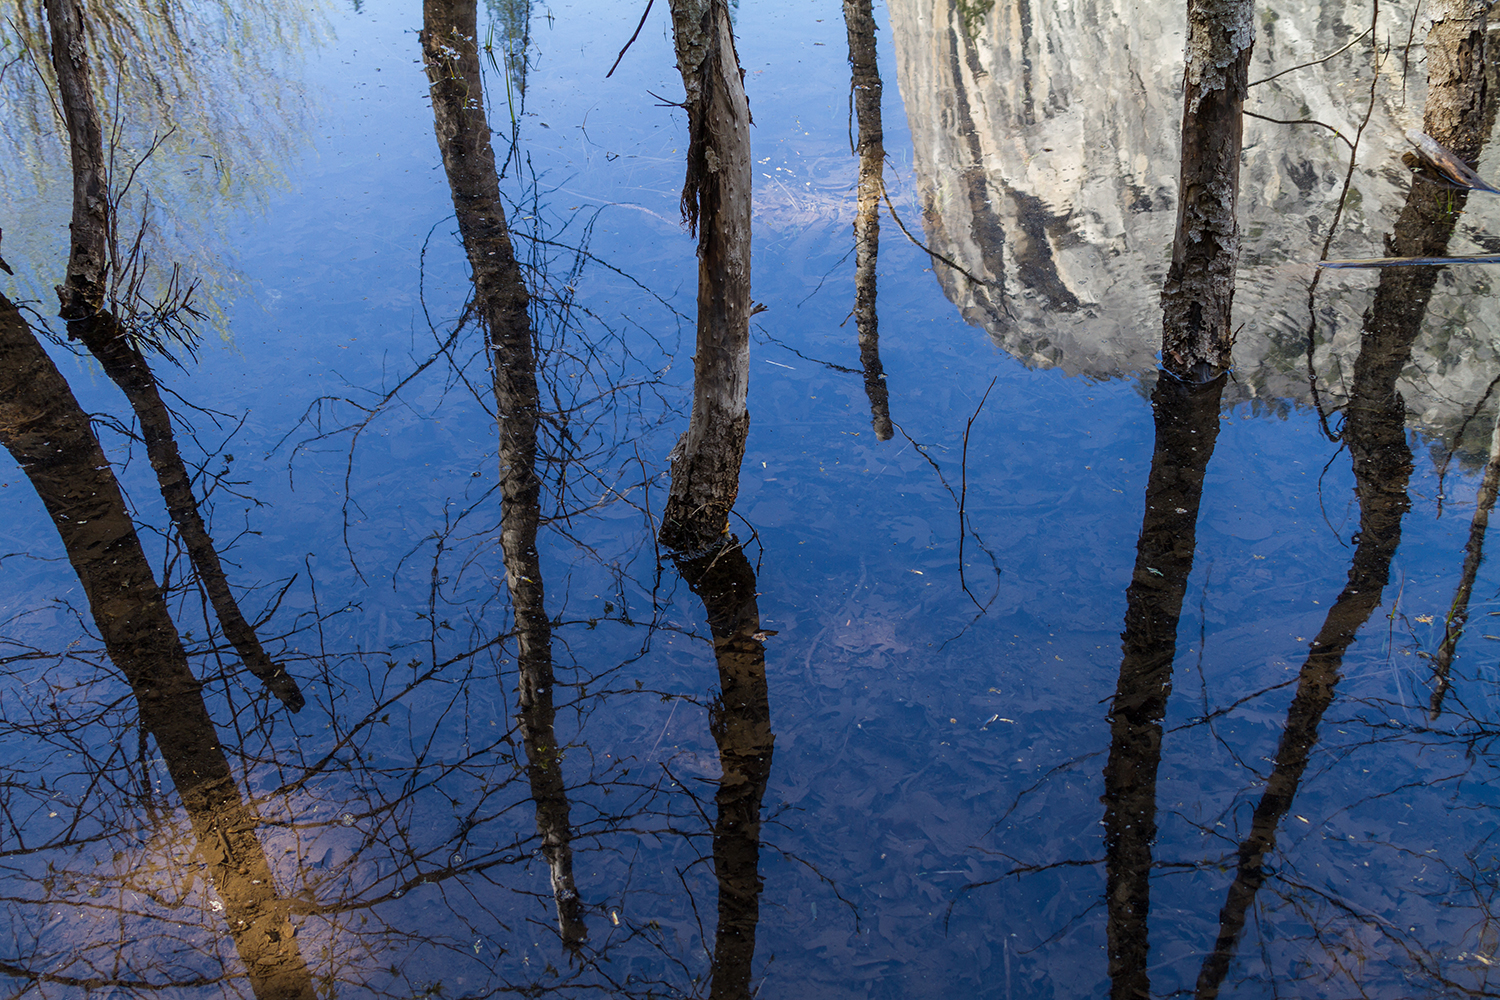 Tree reflection breaks the rules of leading lines